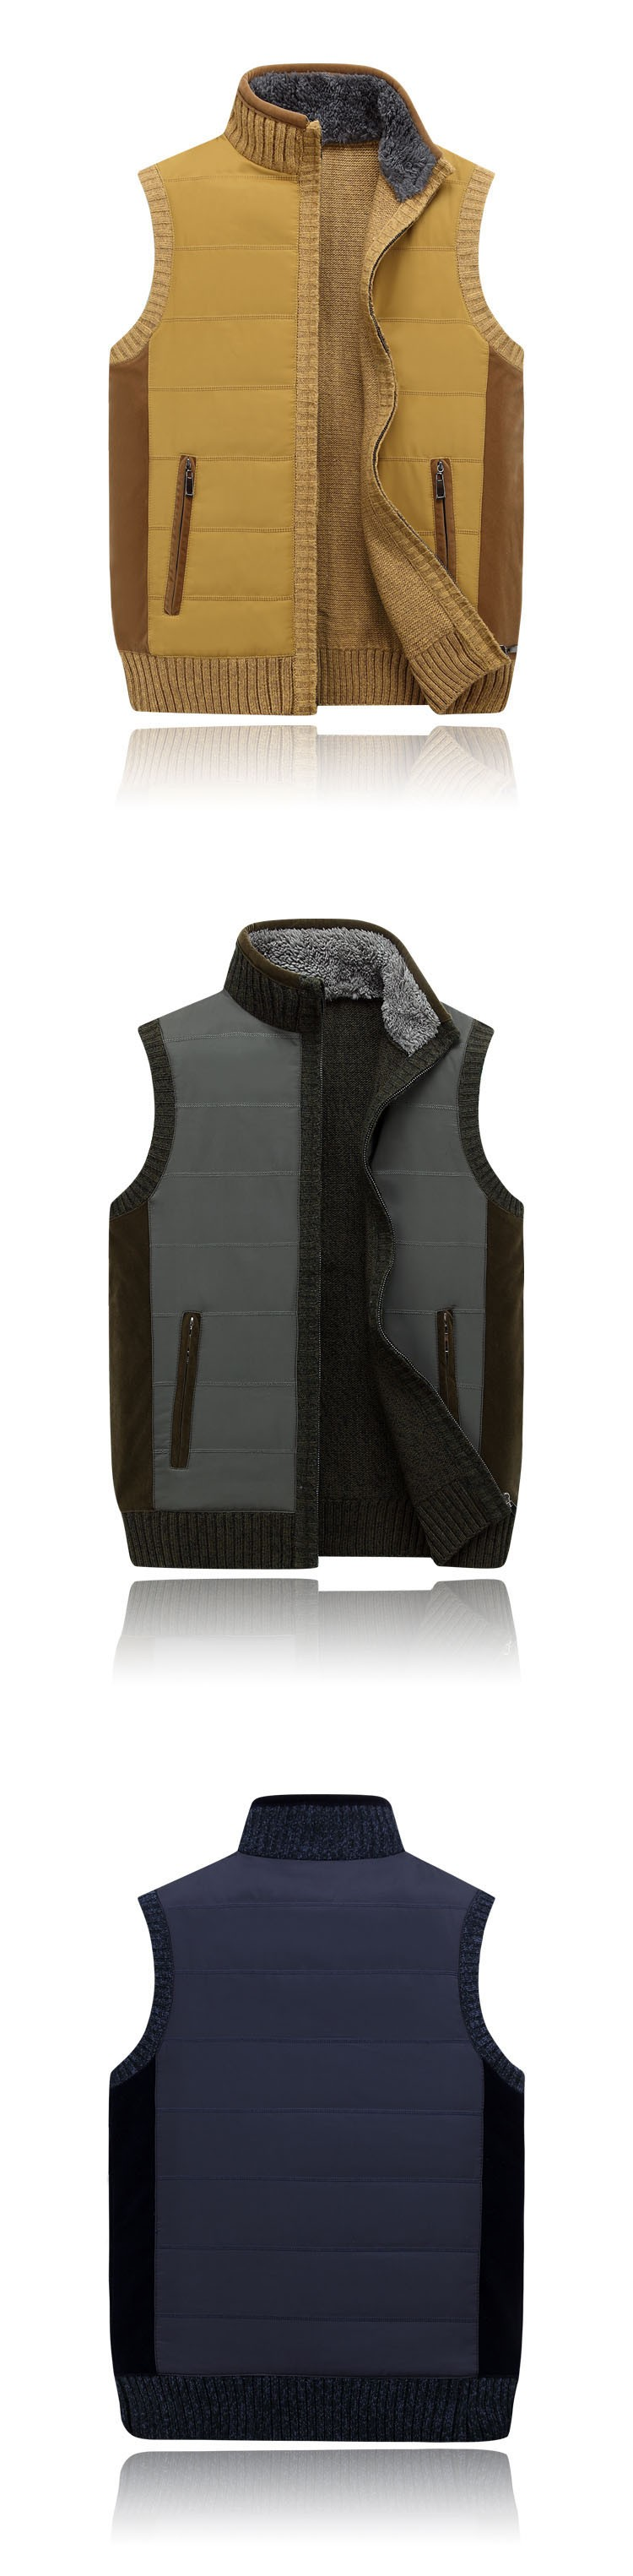 Aolamegs Men Vest Sweater Stand Collar Sleeveless Cardigan Outwear Zipper Sweatercoat 2016 High quality brand clothing Plus Size (7)